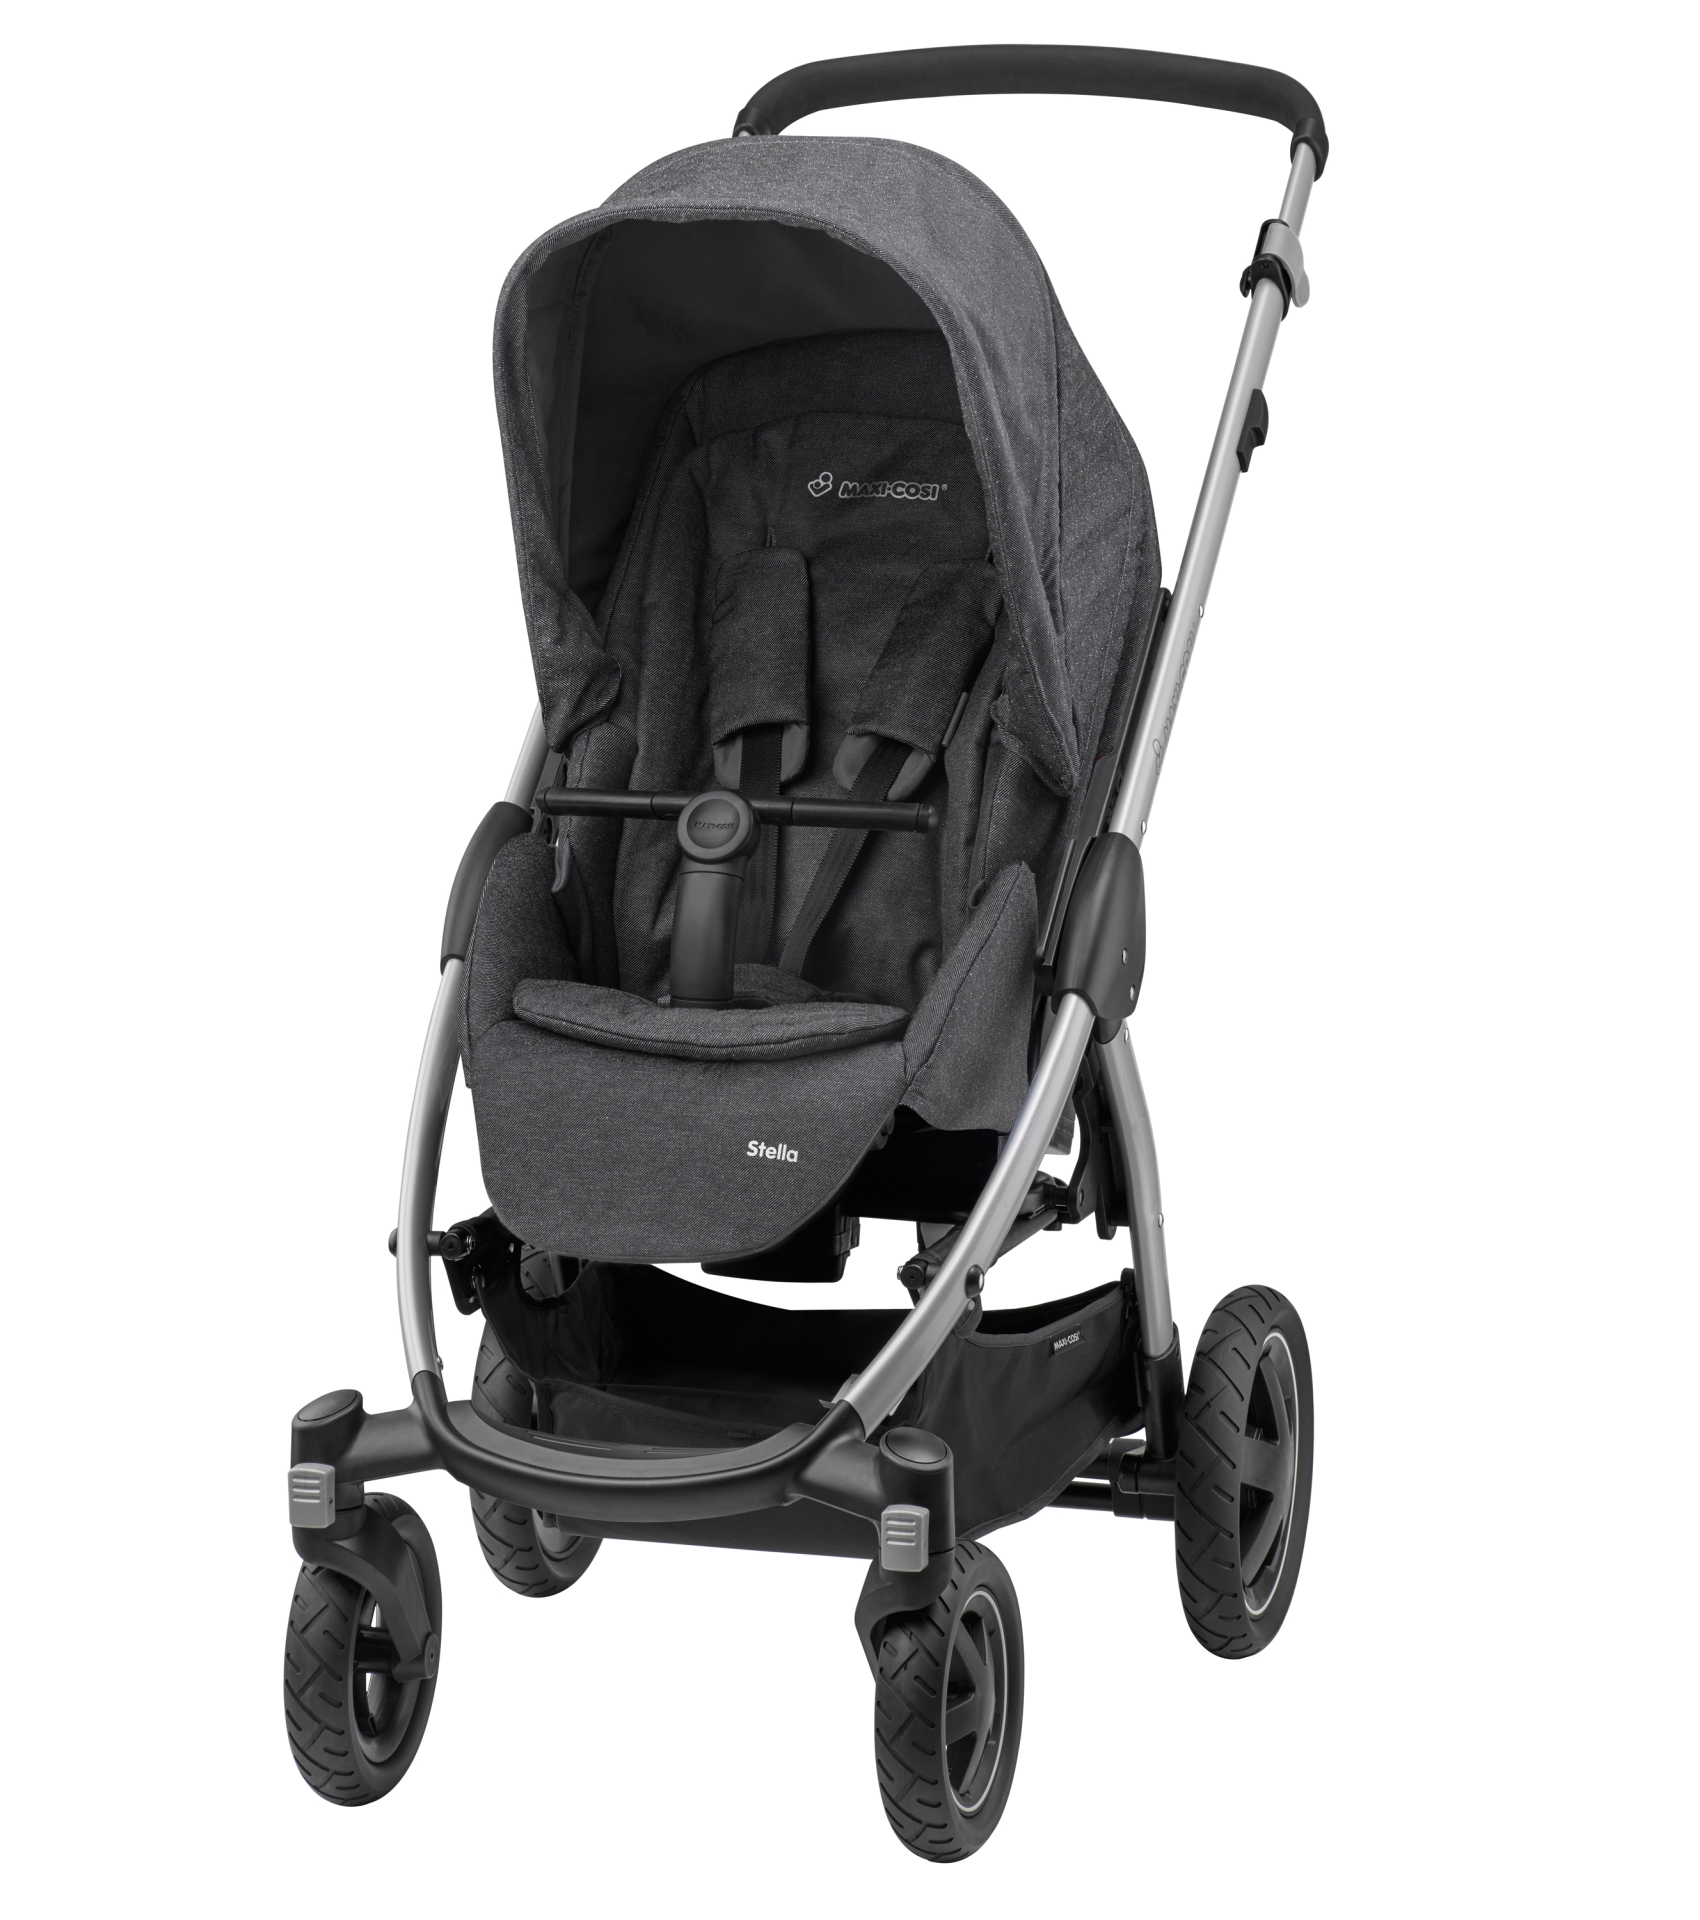 maxi cosi stroller stella 2017 sparkling grey buy at. Black Bedroom Furniture Sets. Home Design Ideas